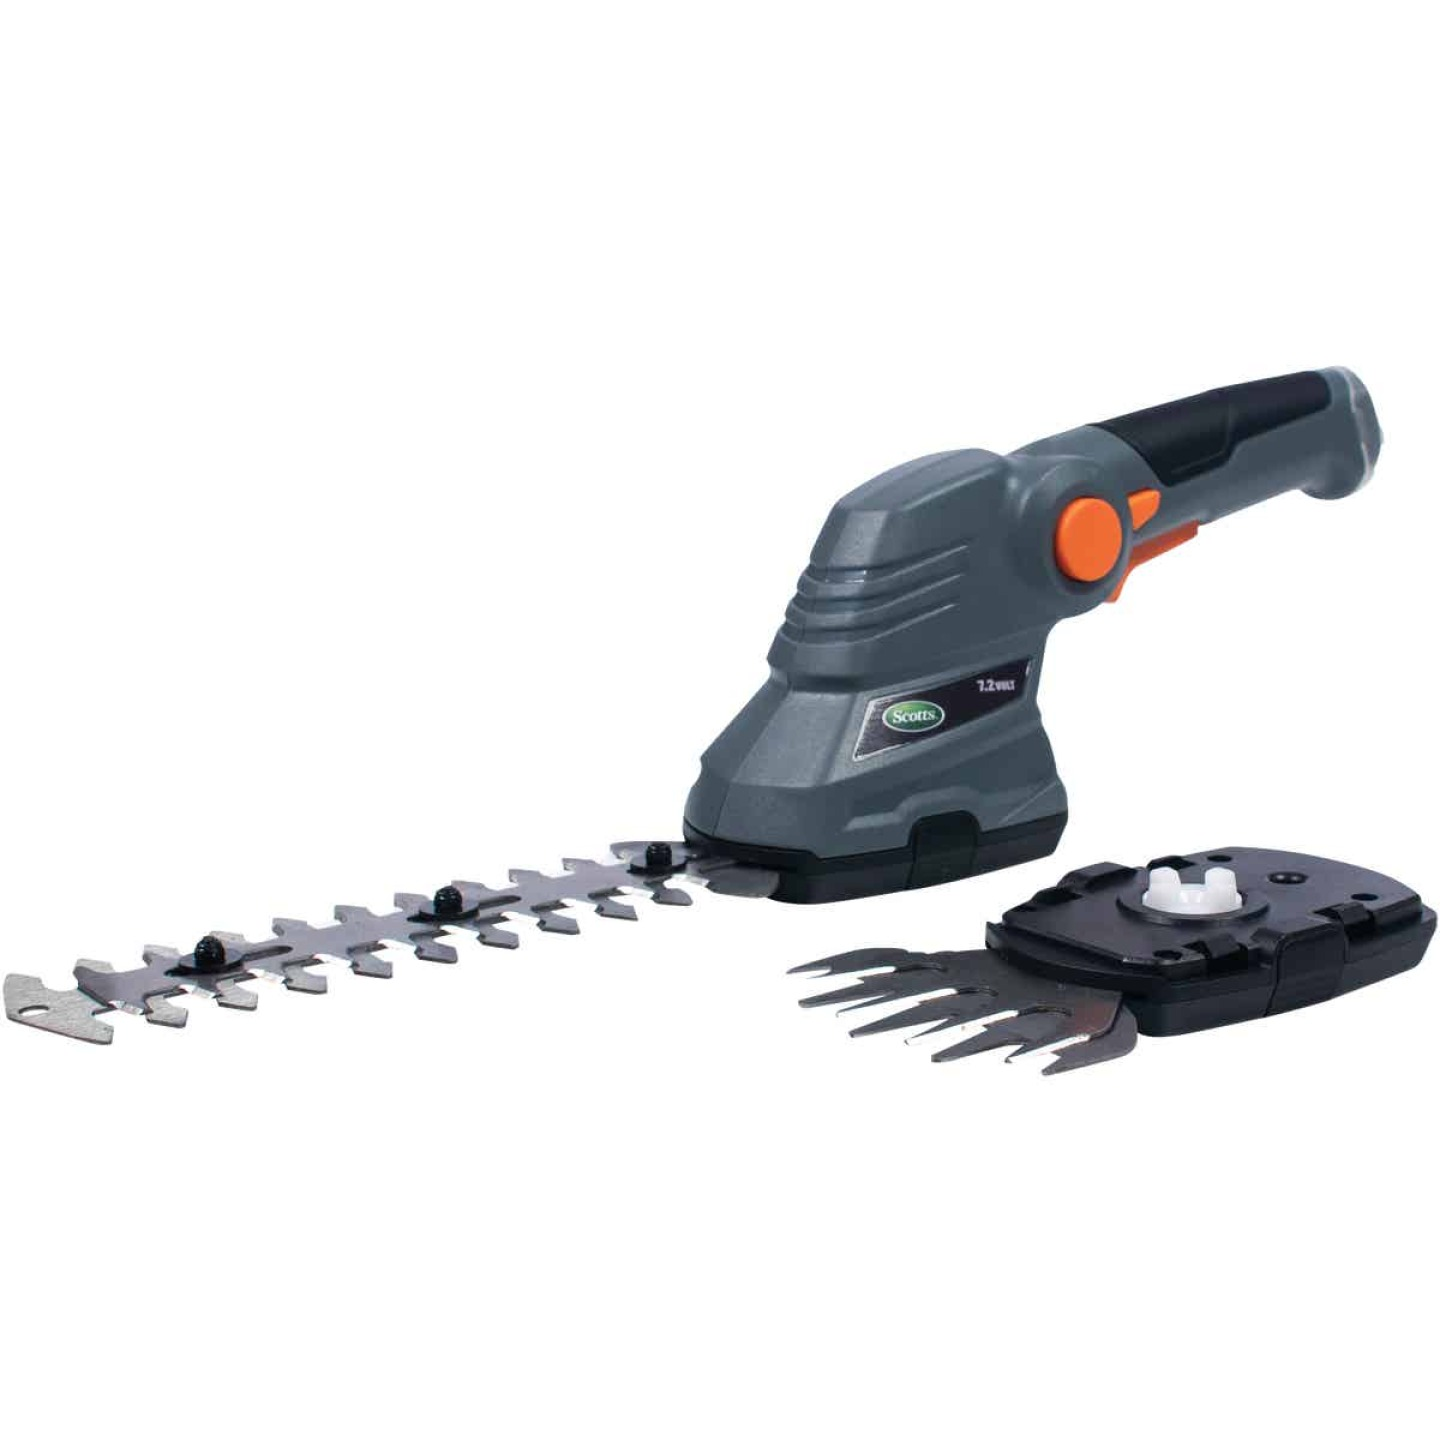 Scotts 7.2V Lithium Ion Cordless Garden Shrub and Shear Combo Pack Image 1